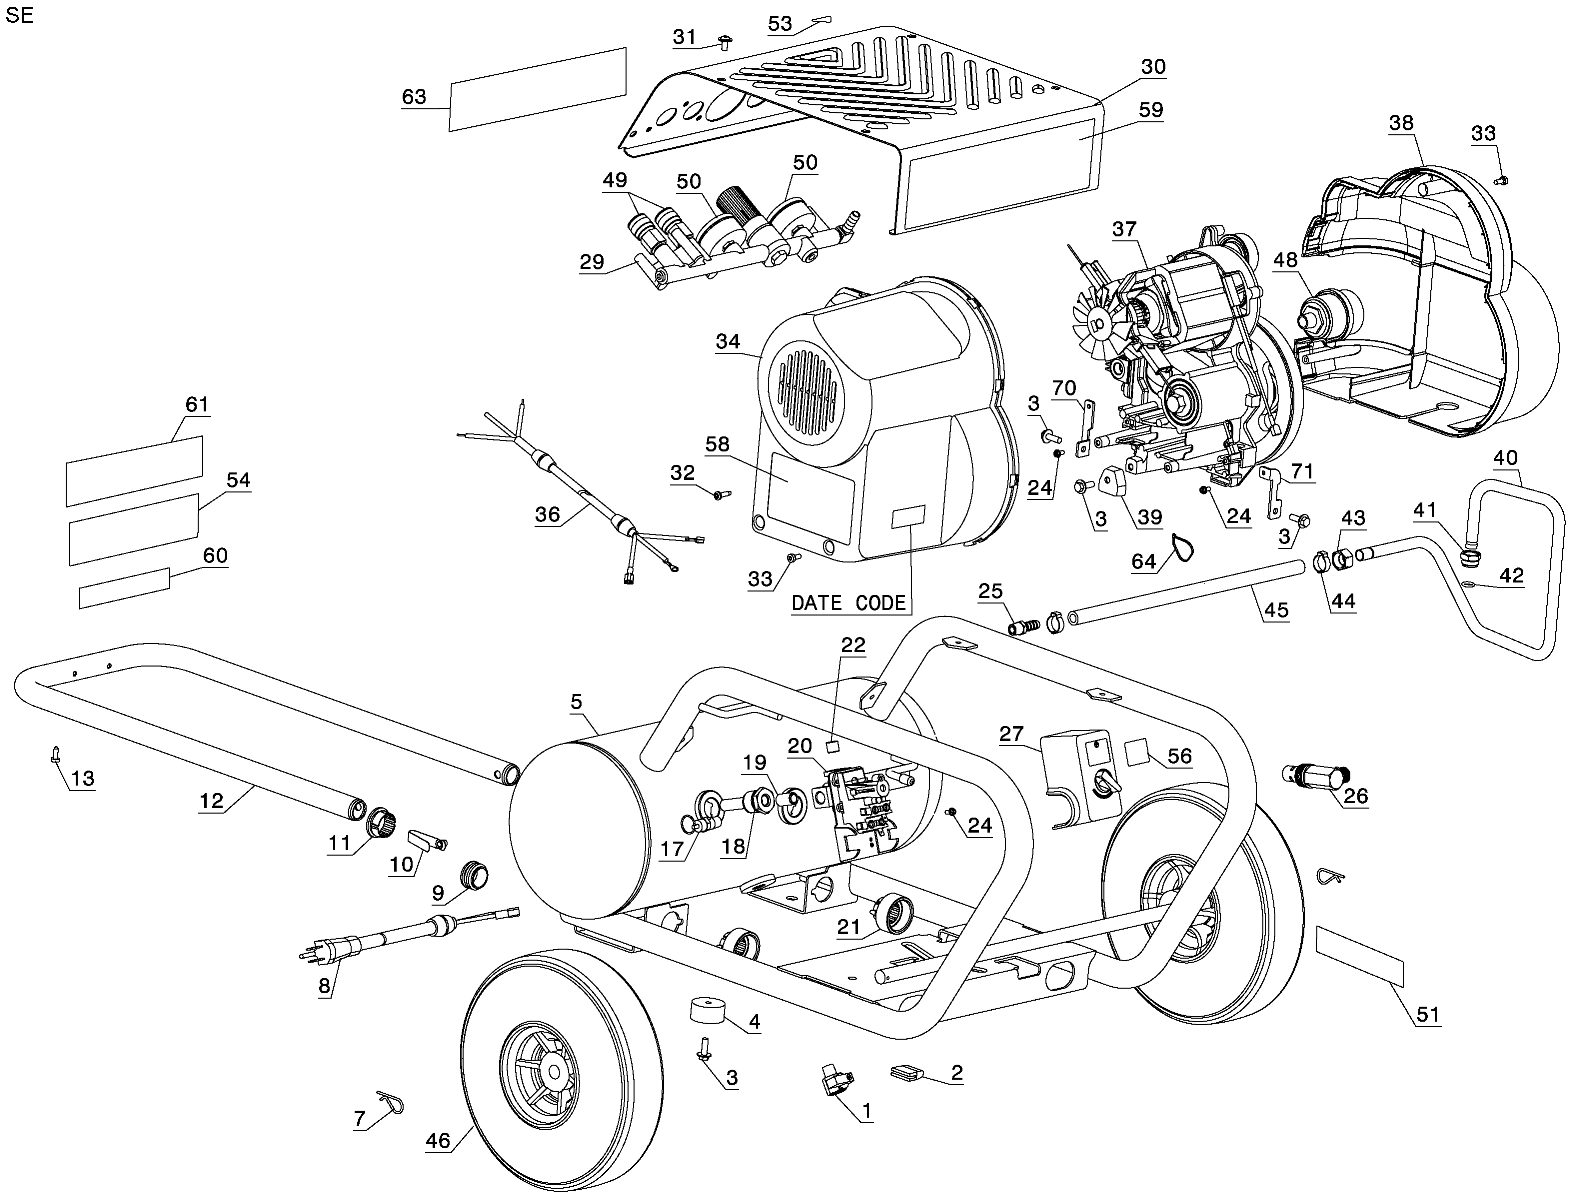 D55146 - Air Compressor schematic